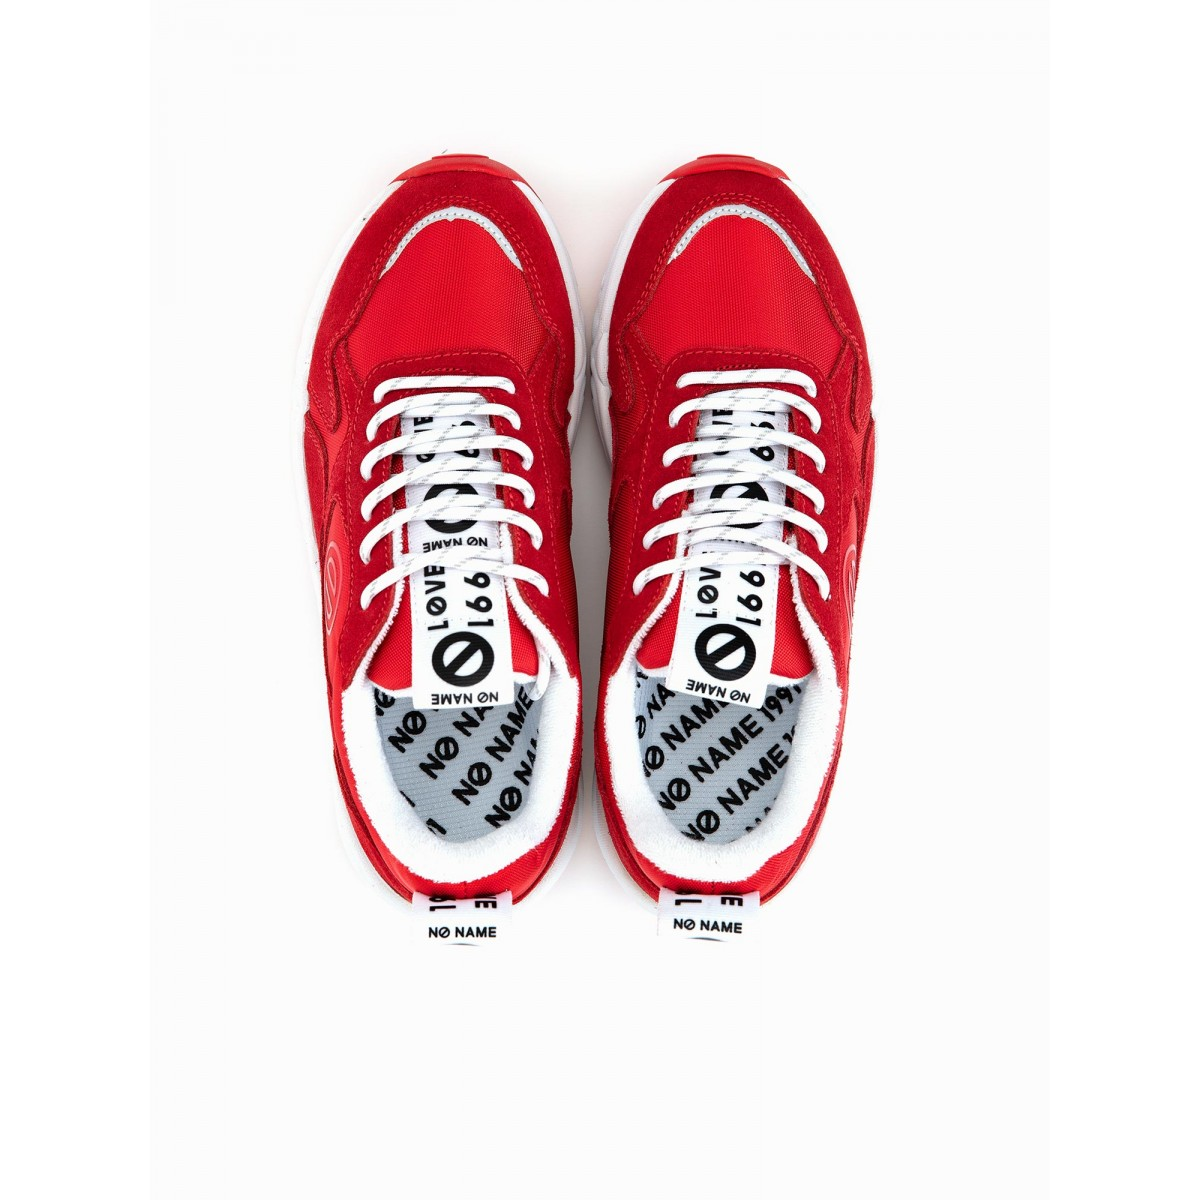 No Name NITRO JOGGER - NYLON/SUEDE - RED/RED